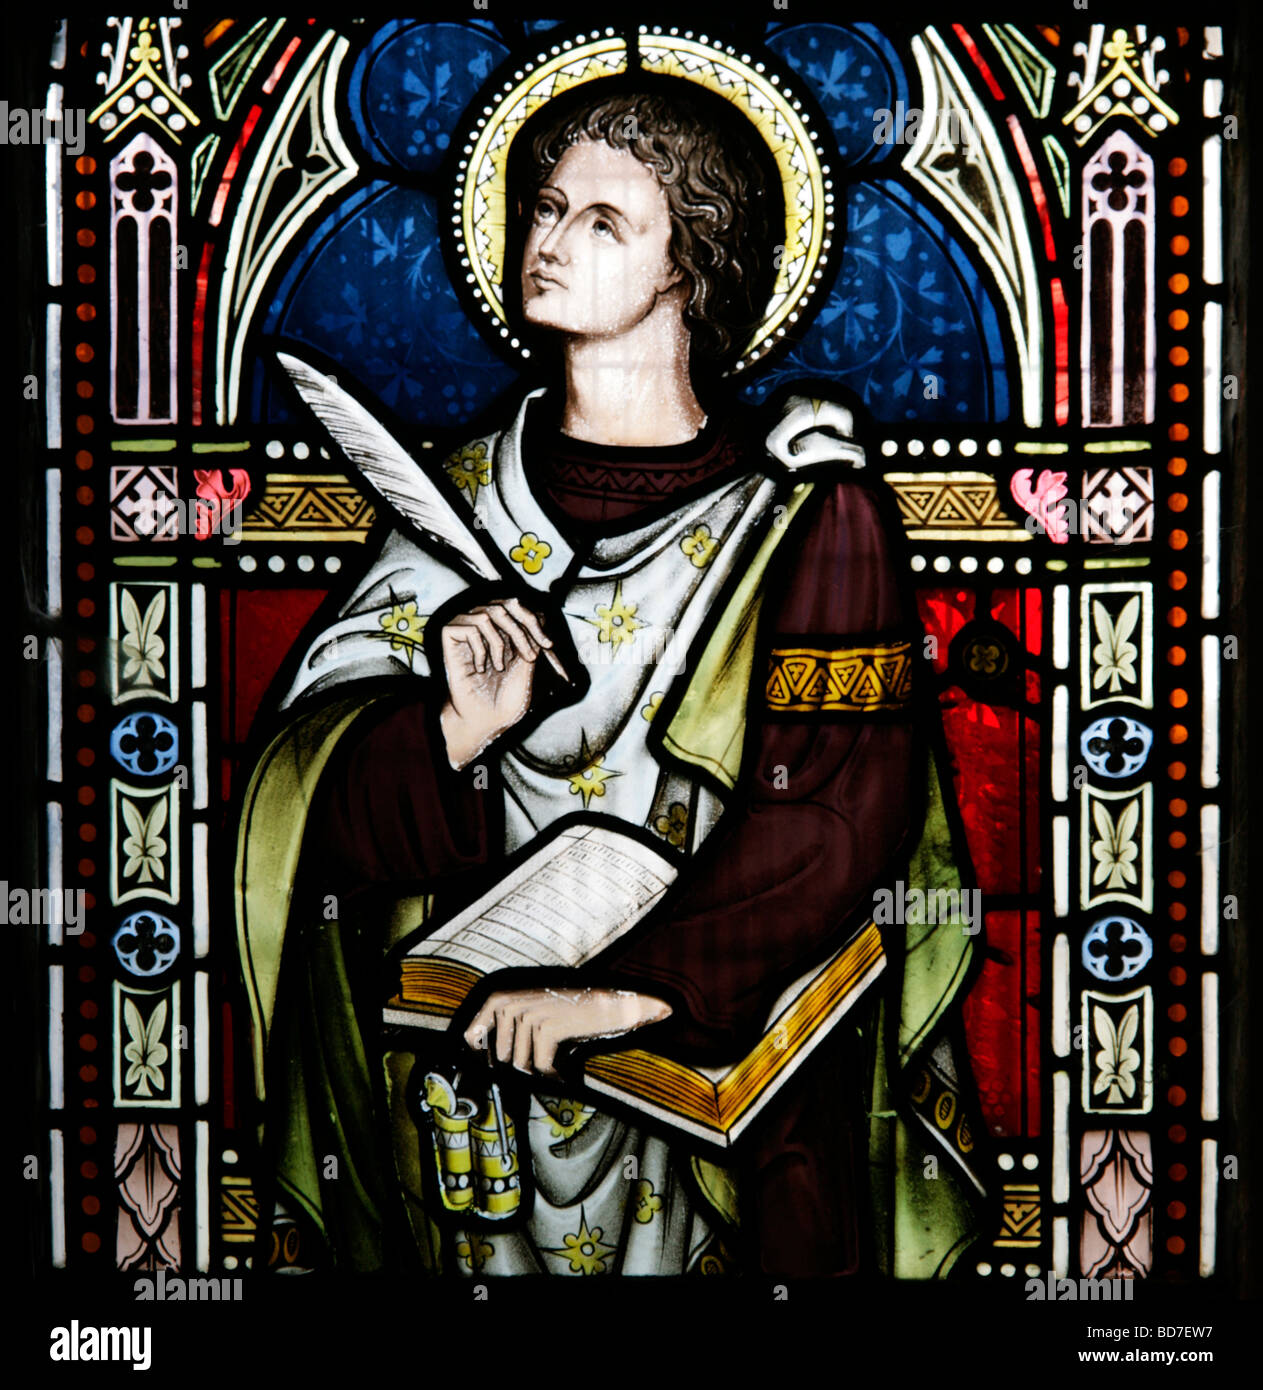 A Stained Glass Window depicting Saint John holding a book and quill - Stock Image